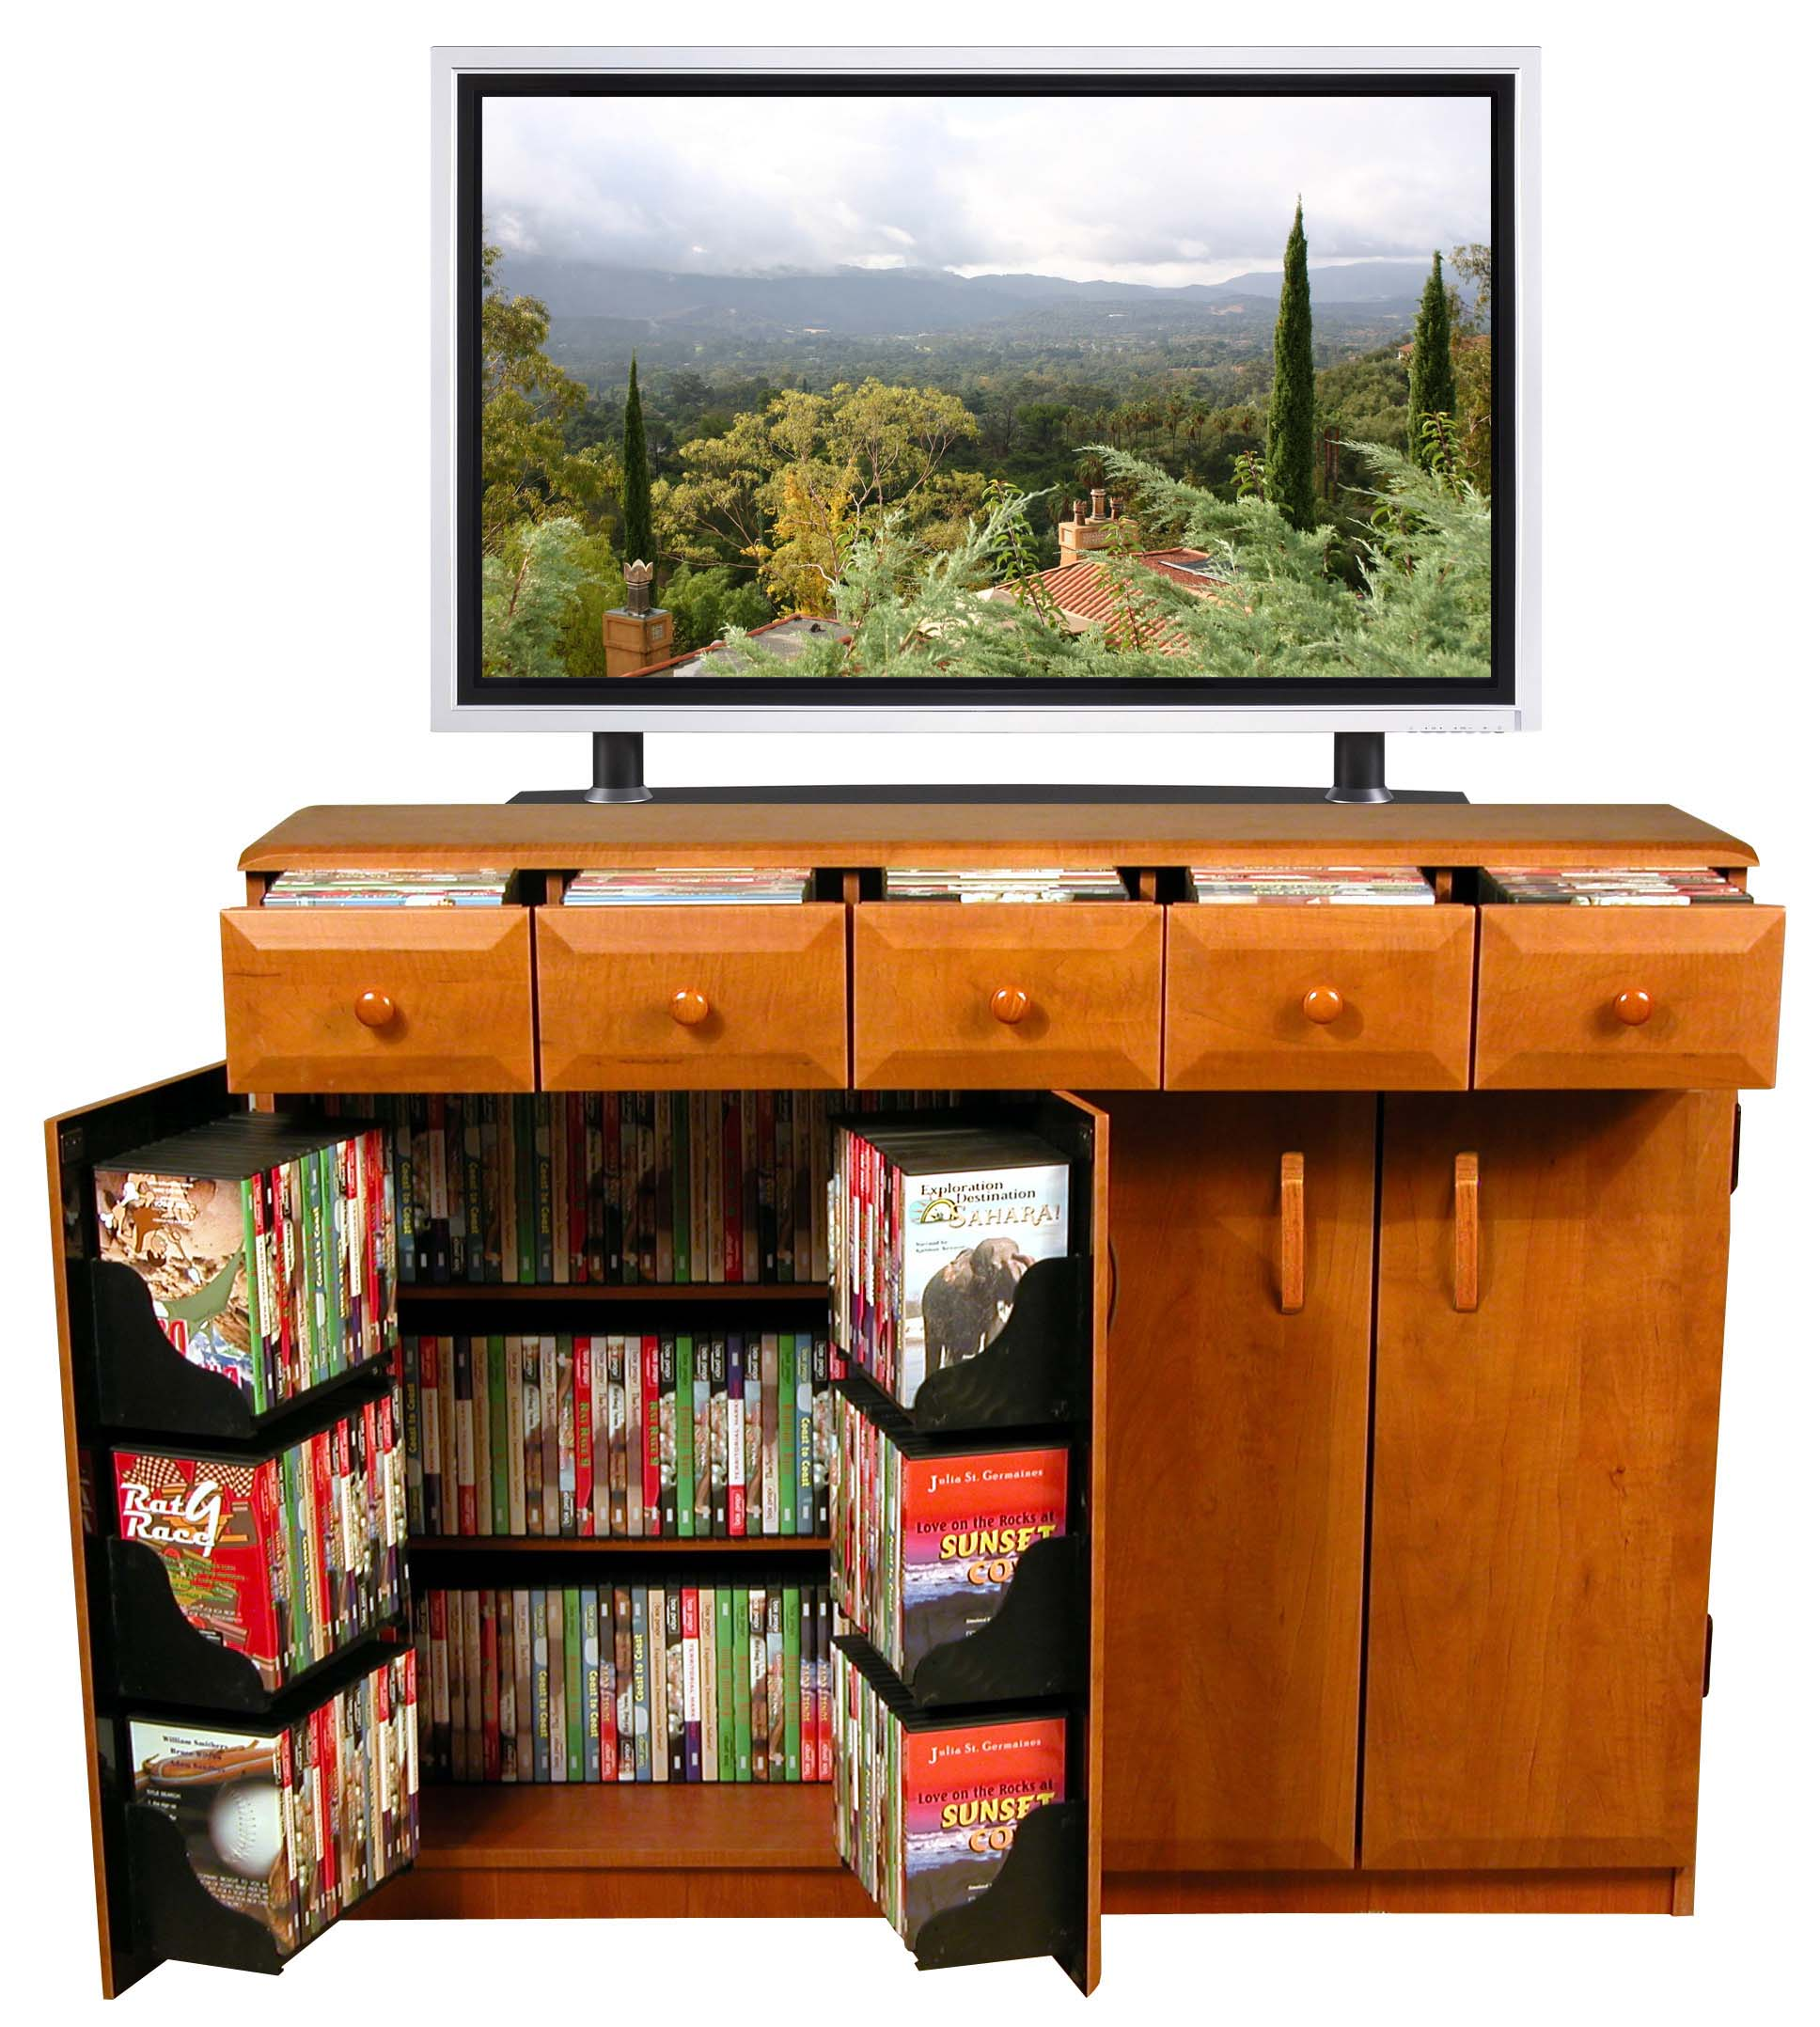 pc centre hall tv rack furniture furnishing showroom malaysia in view largest cabinet